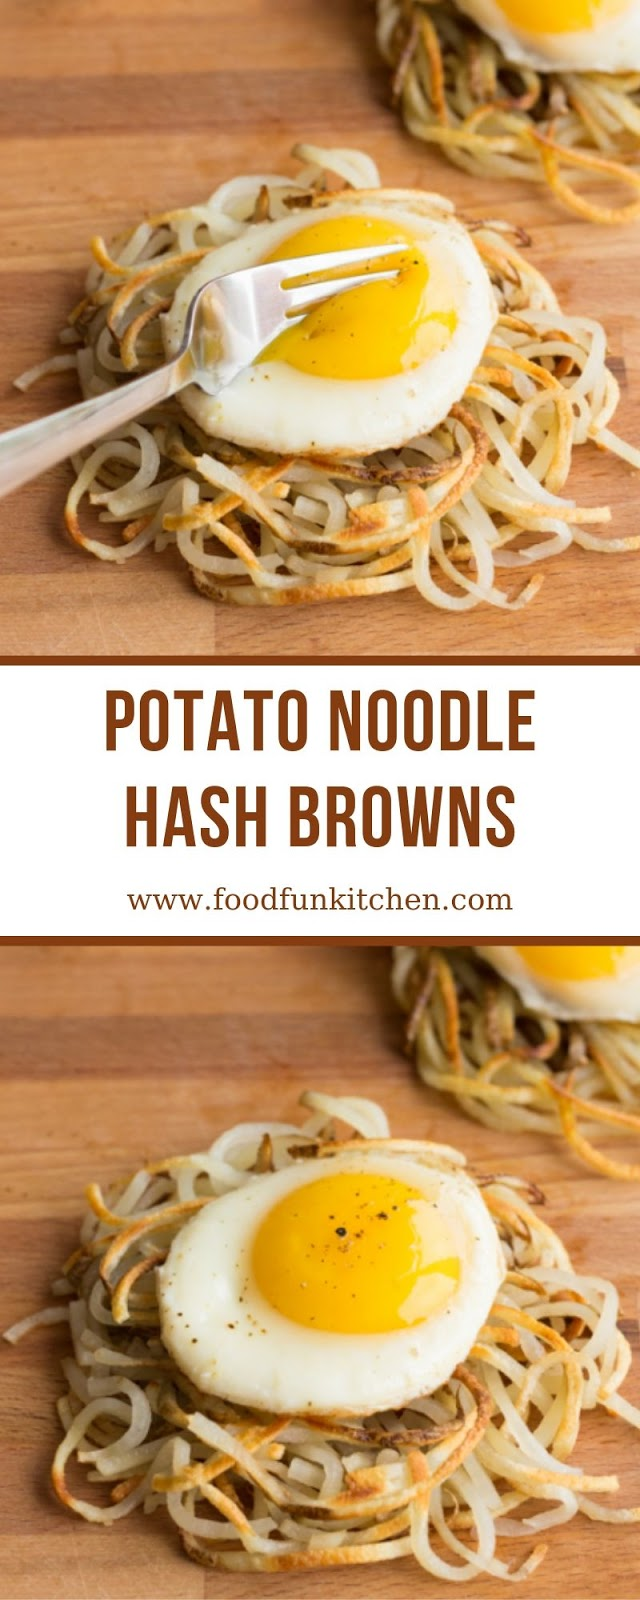 POTATO NOODLE HASH BROWNS